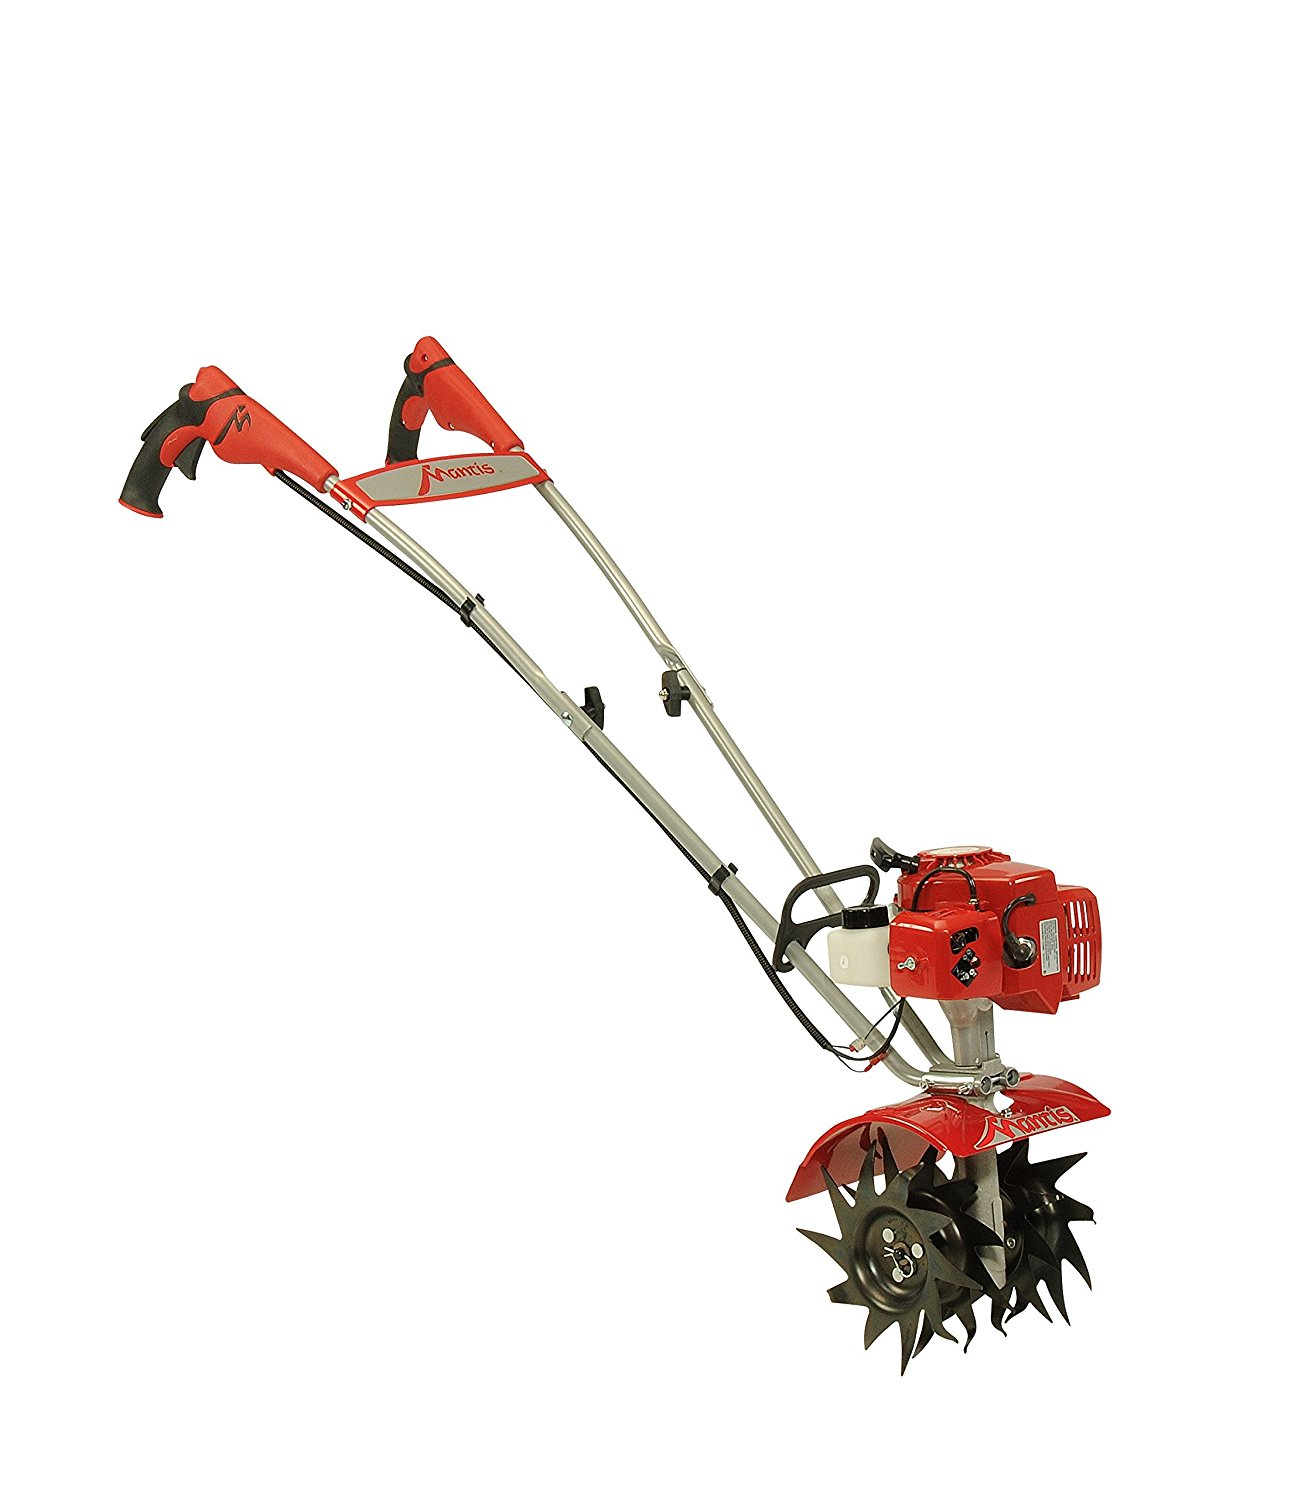 Mantis 2-Cycle Ultra-Lightweight Tiller/Cultivator